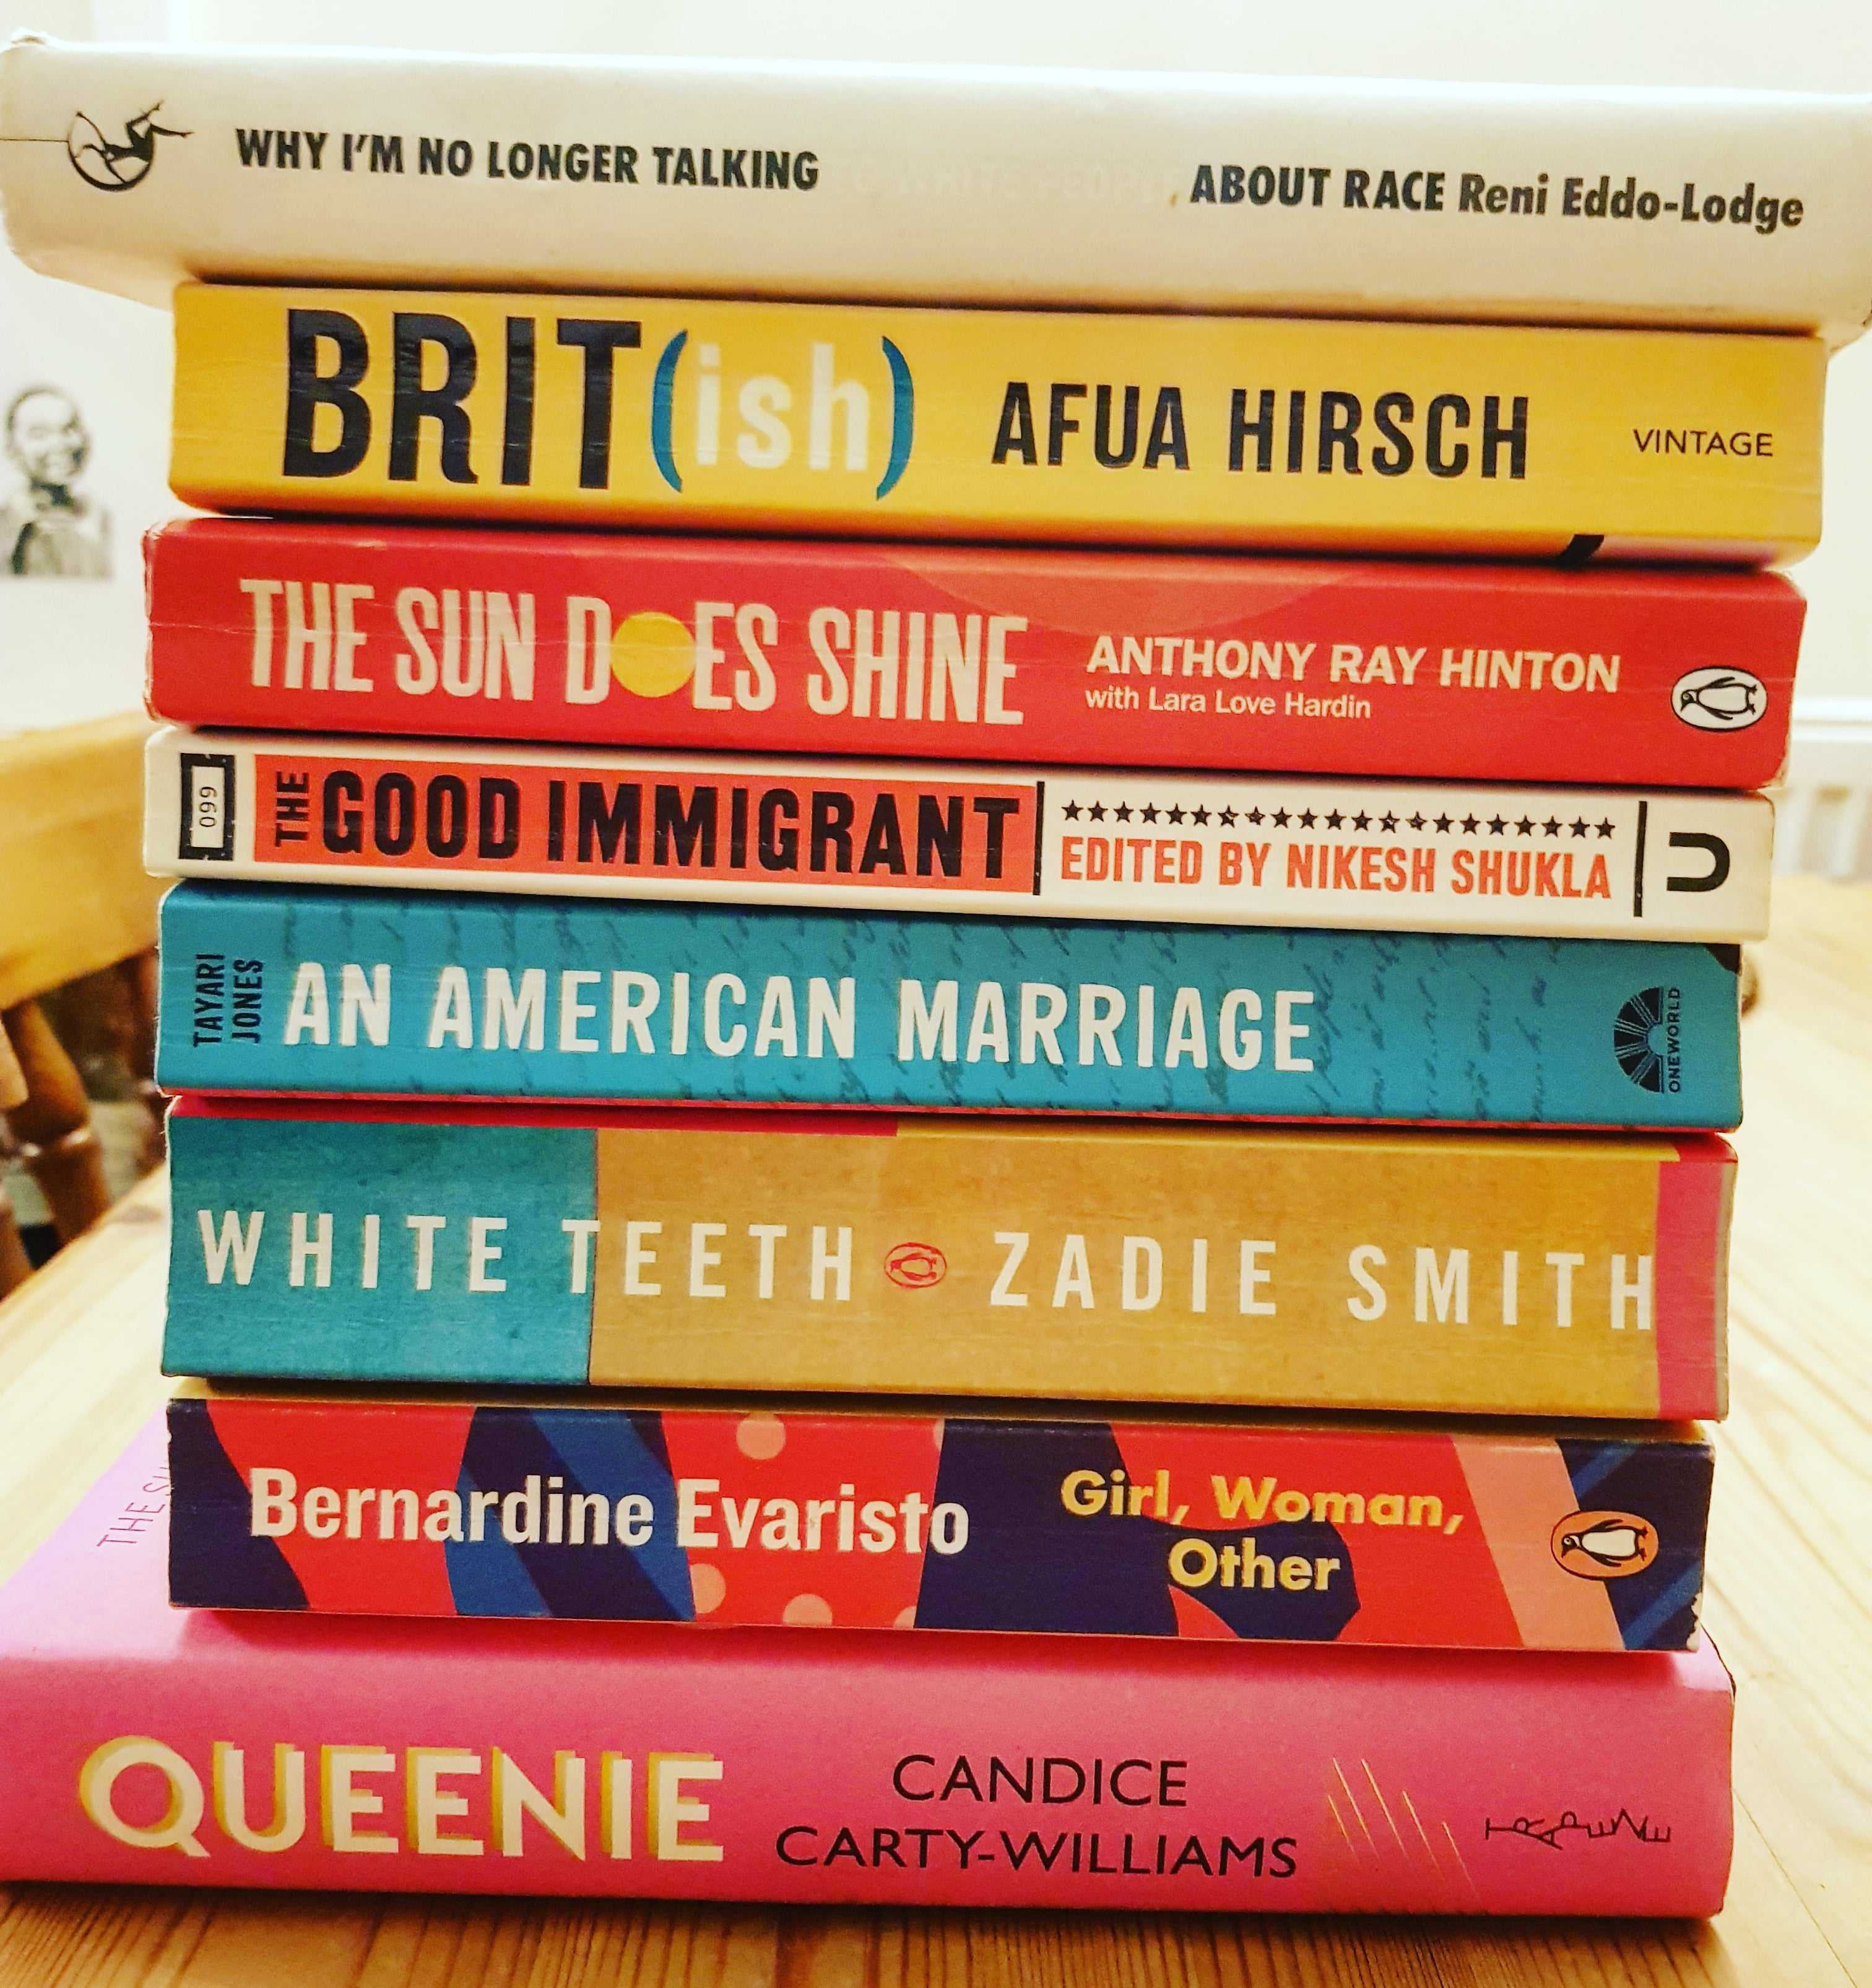 A stack of books about race, identity and belonging. The stack includes titles by Zadie Smith, Afua Hirsch & Reni Eddo-Lodge.